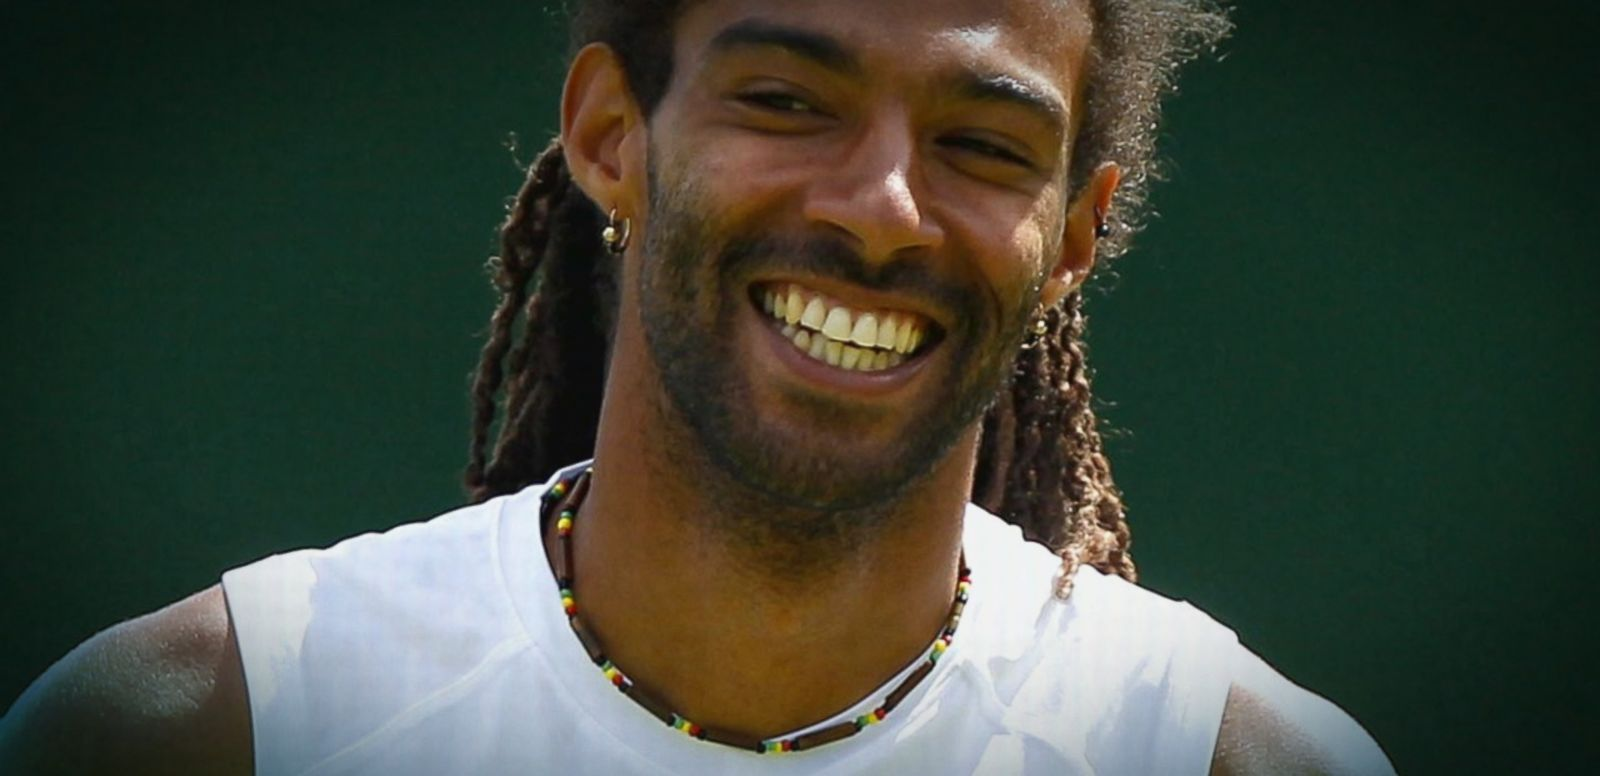 VIDEO: Dustin Brown Becomes Wimbledon's Breakout Star